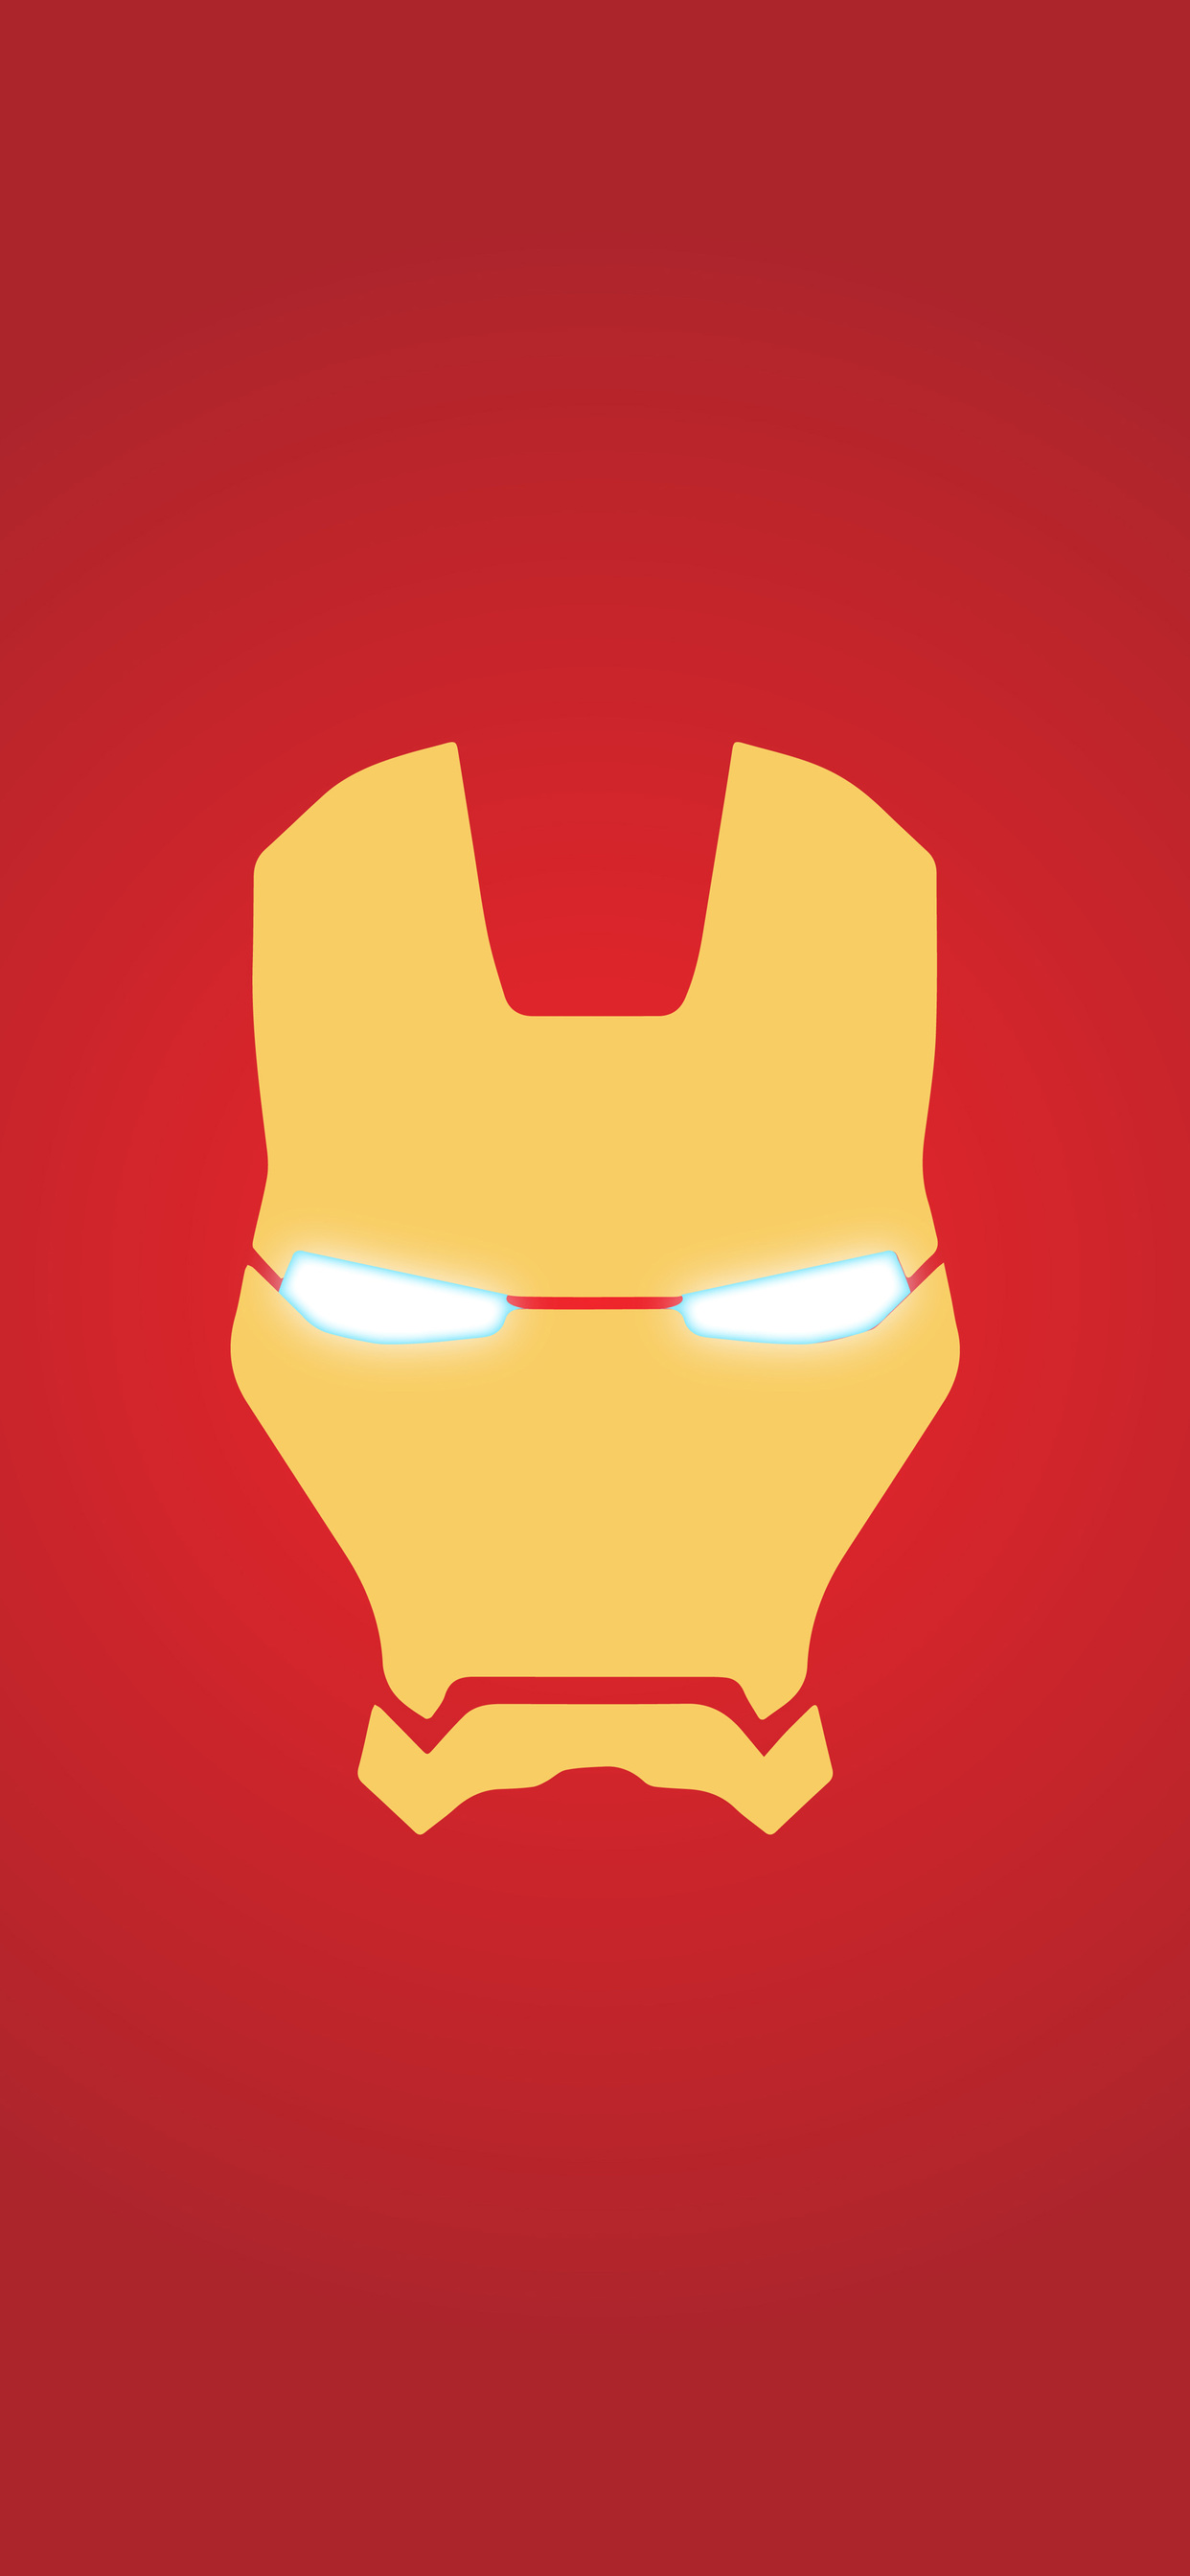 1242x2688 Iron Man Mask Minimal Iphone Xs Max Hd 4k Wallpapers